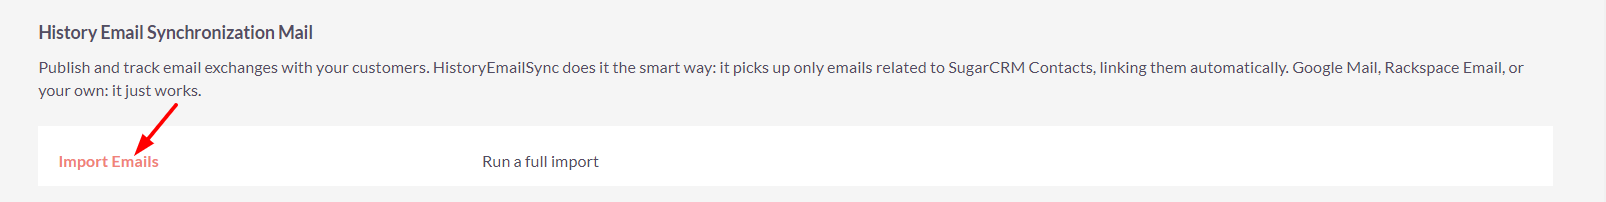 import-emails.png